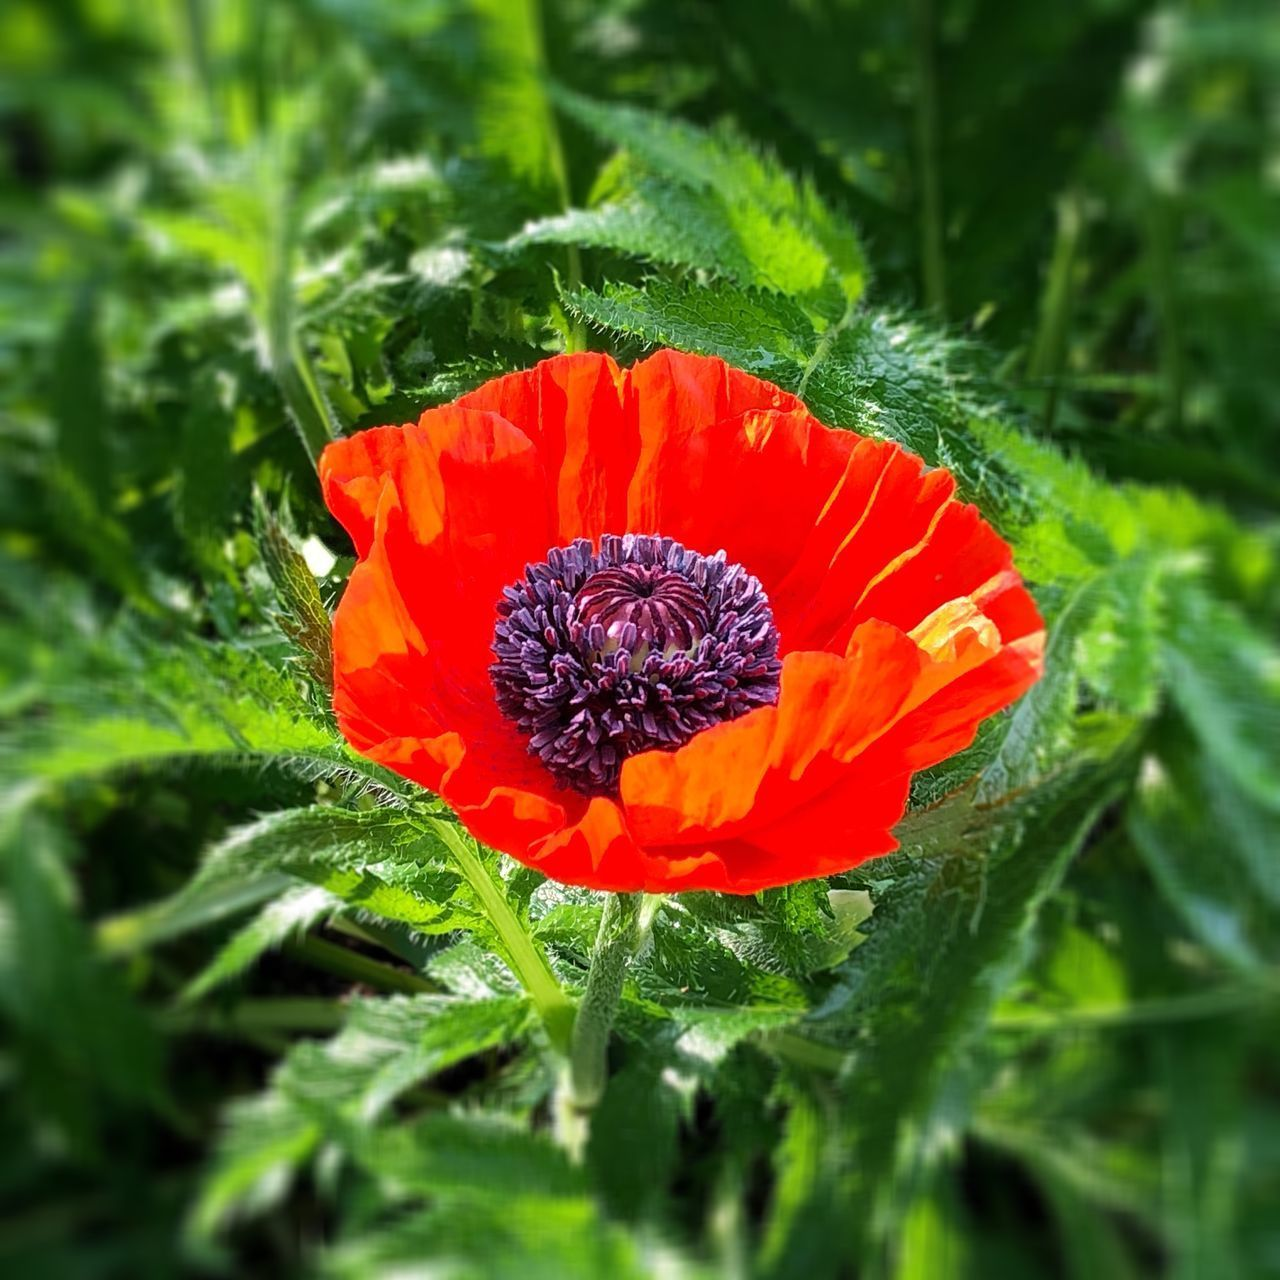 CLOSE-UP OF RED POPPY FLOWER ON PLANT